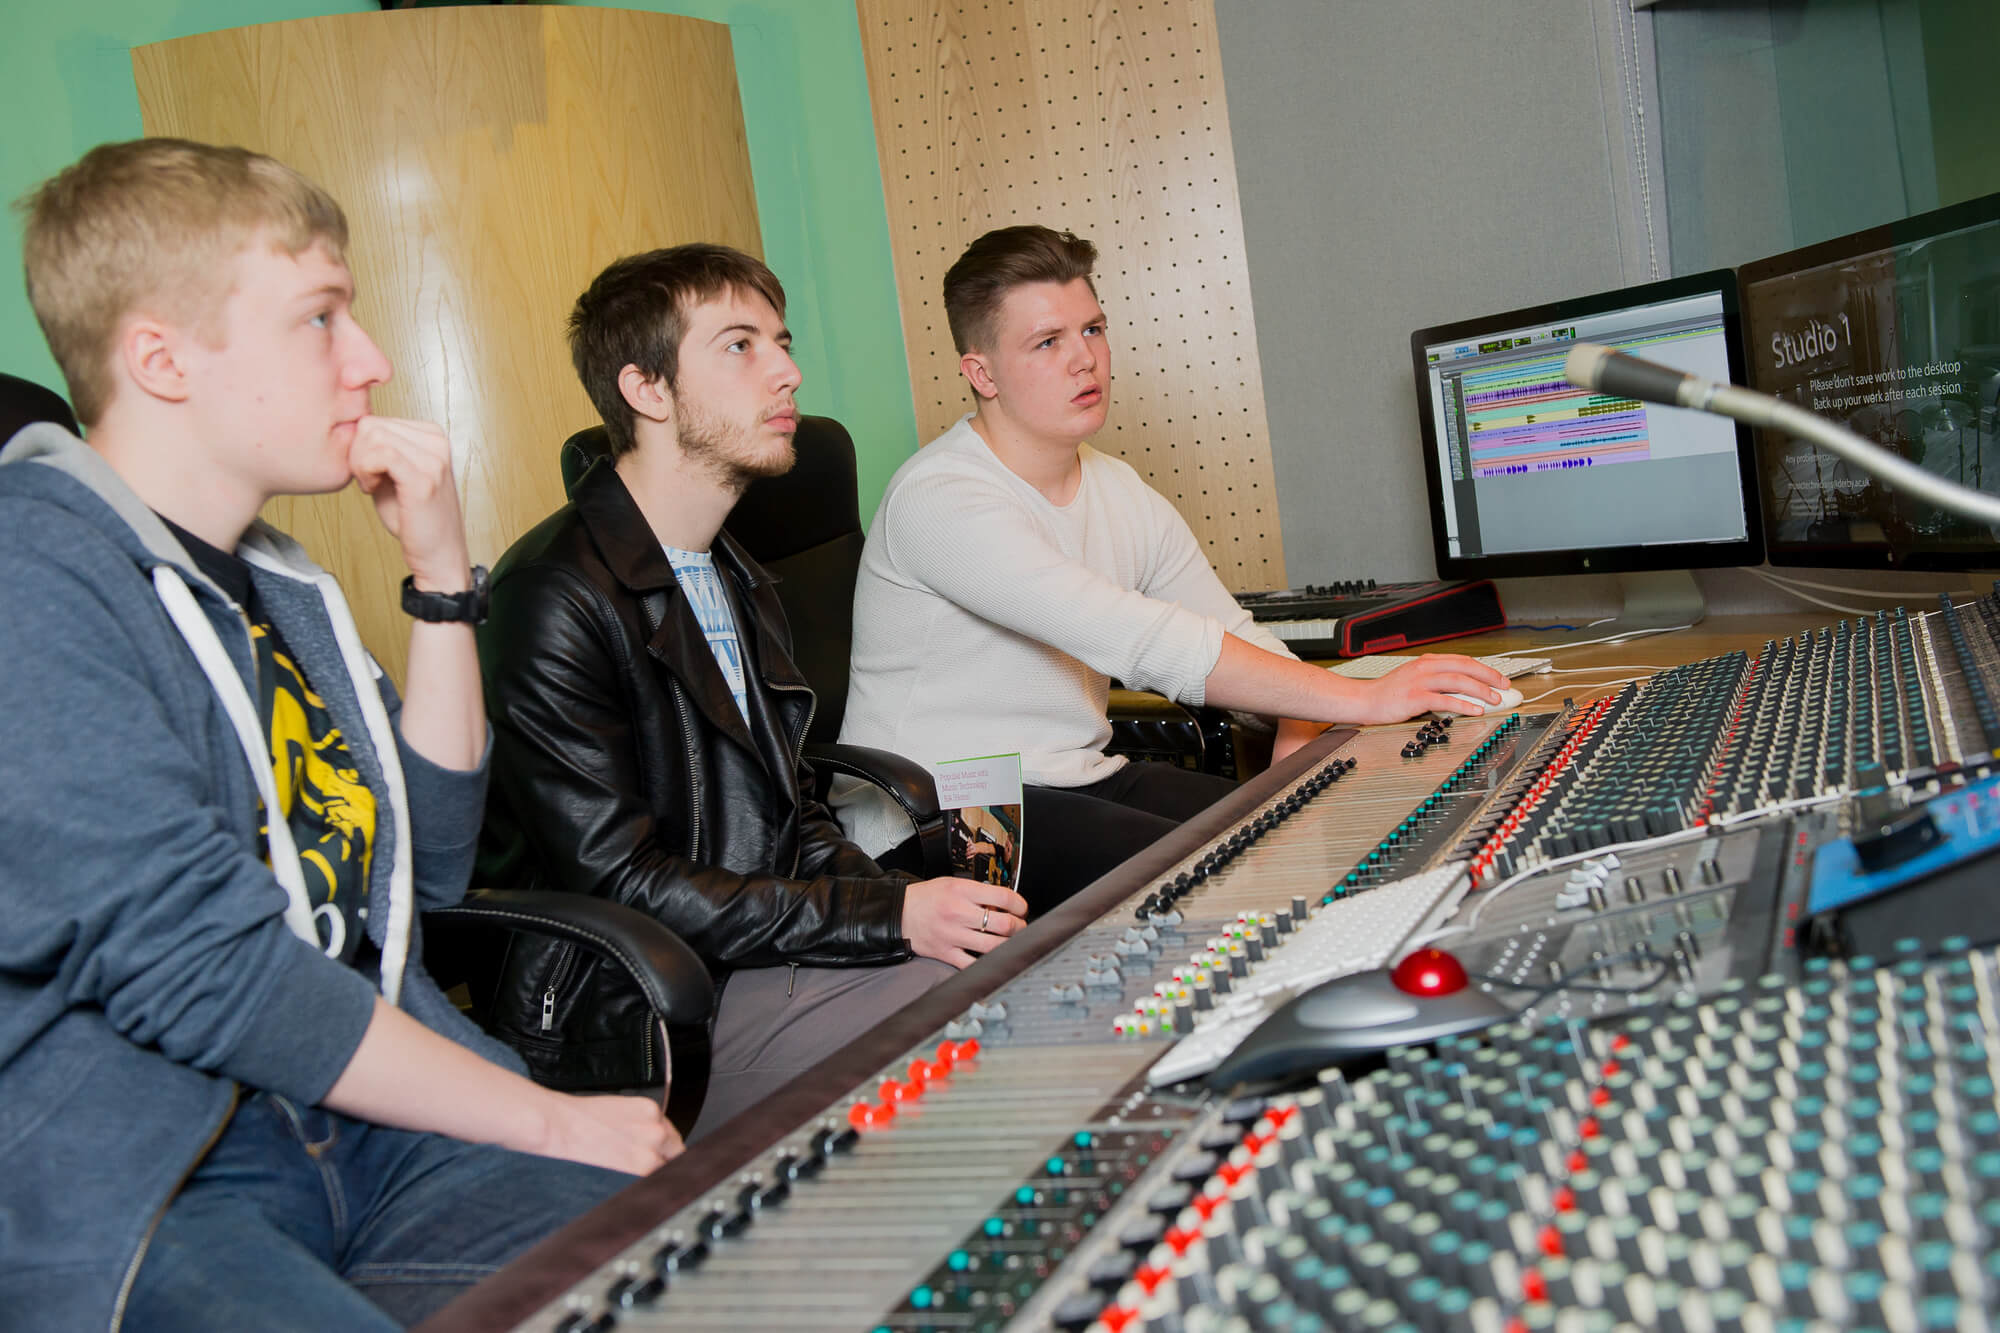 Applicants using the mixing desk in our music studio